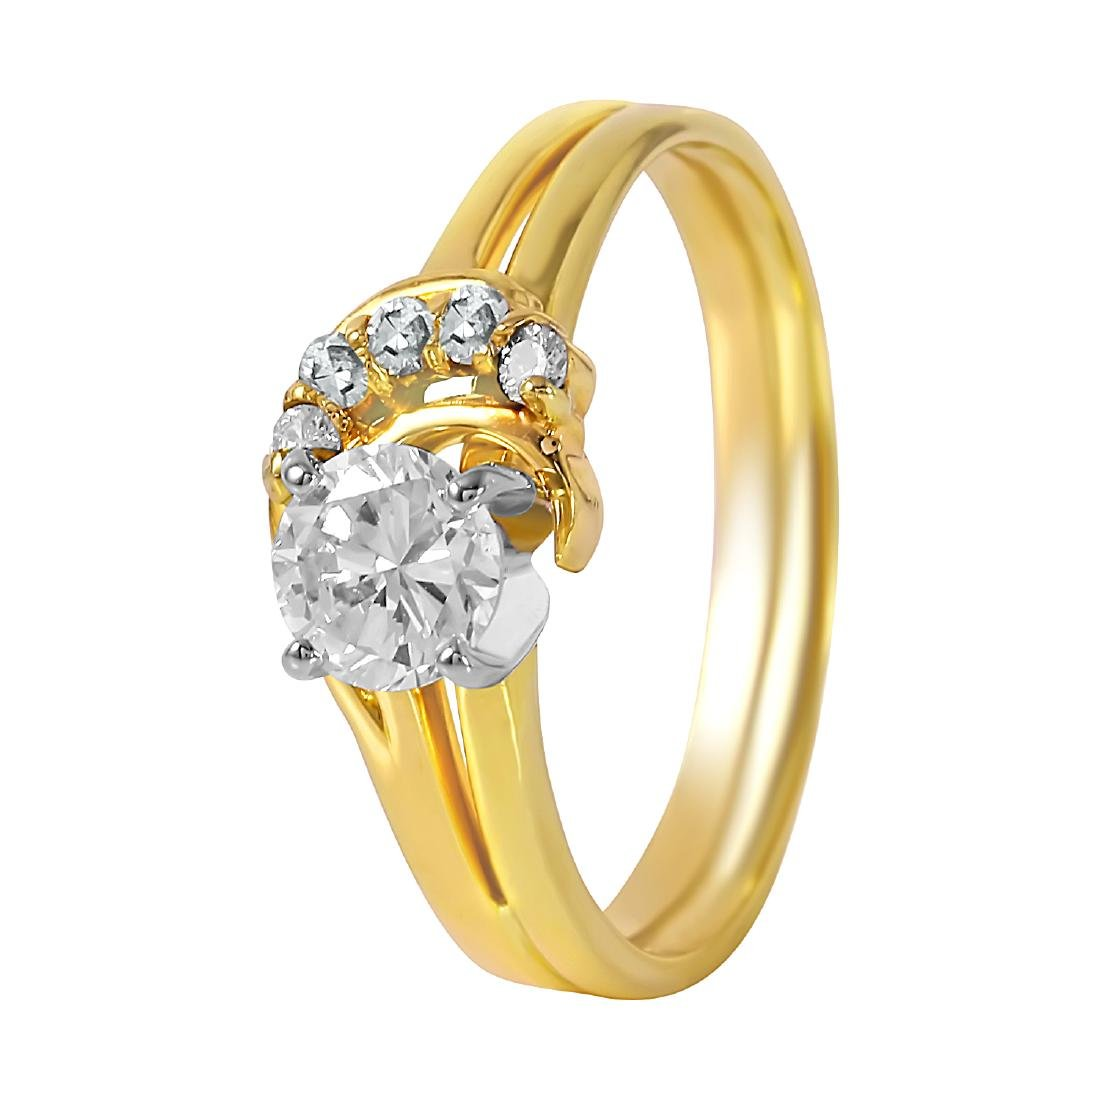 14KT Yellow Gold 0.55ctw Diamond Engagement Ring Size